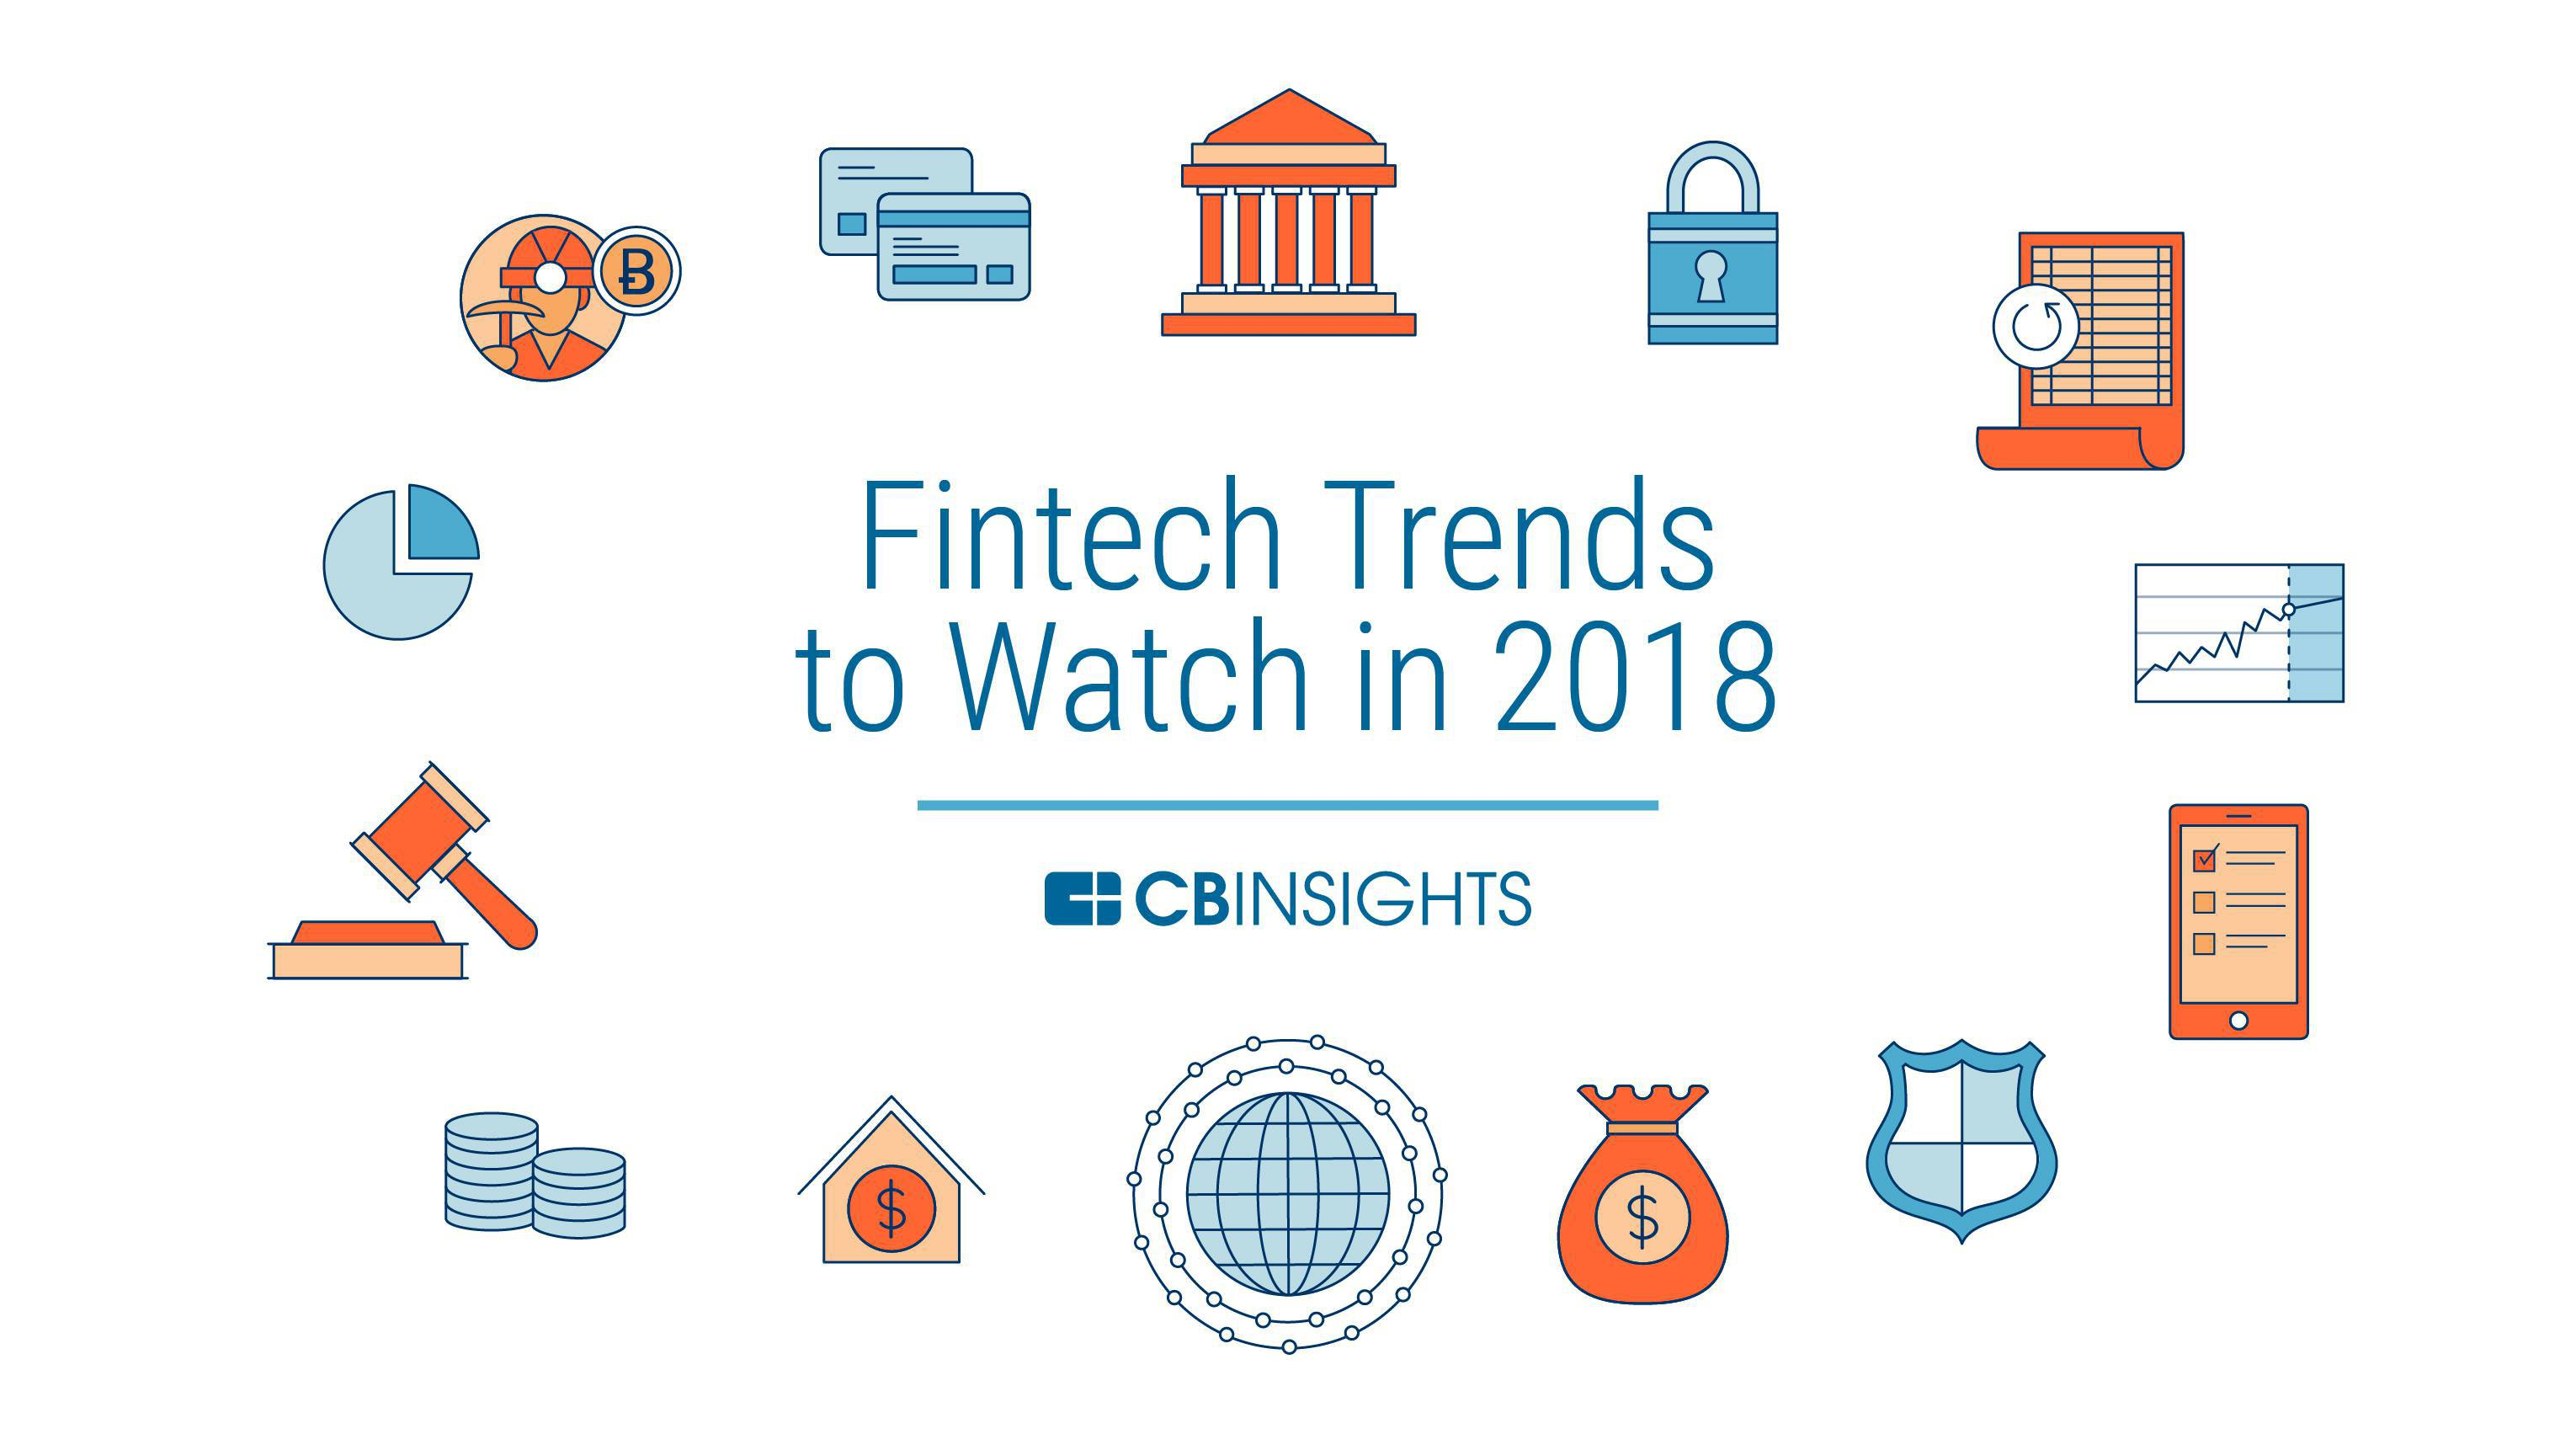 Fintech Trends to Watch in 2018